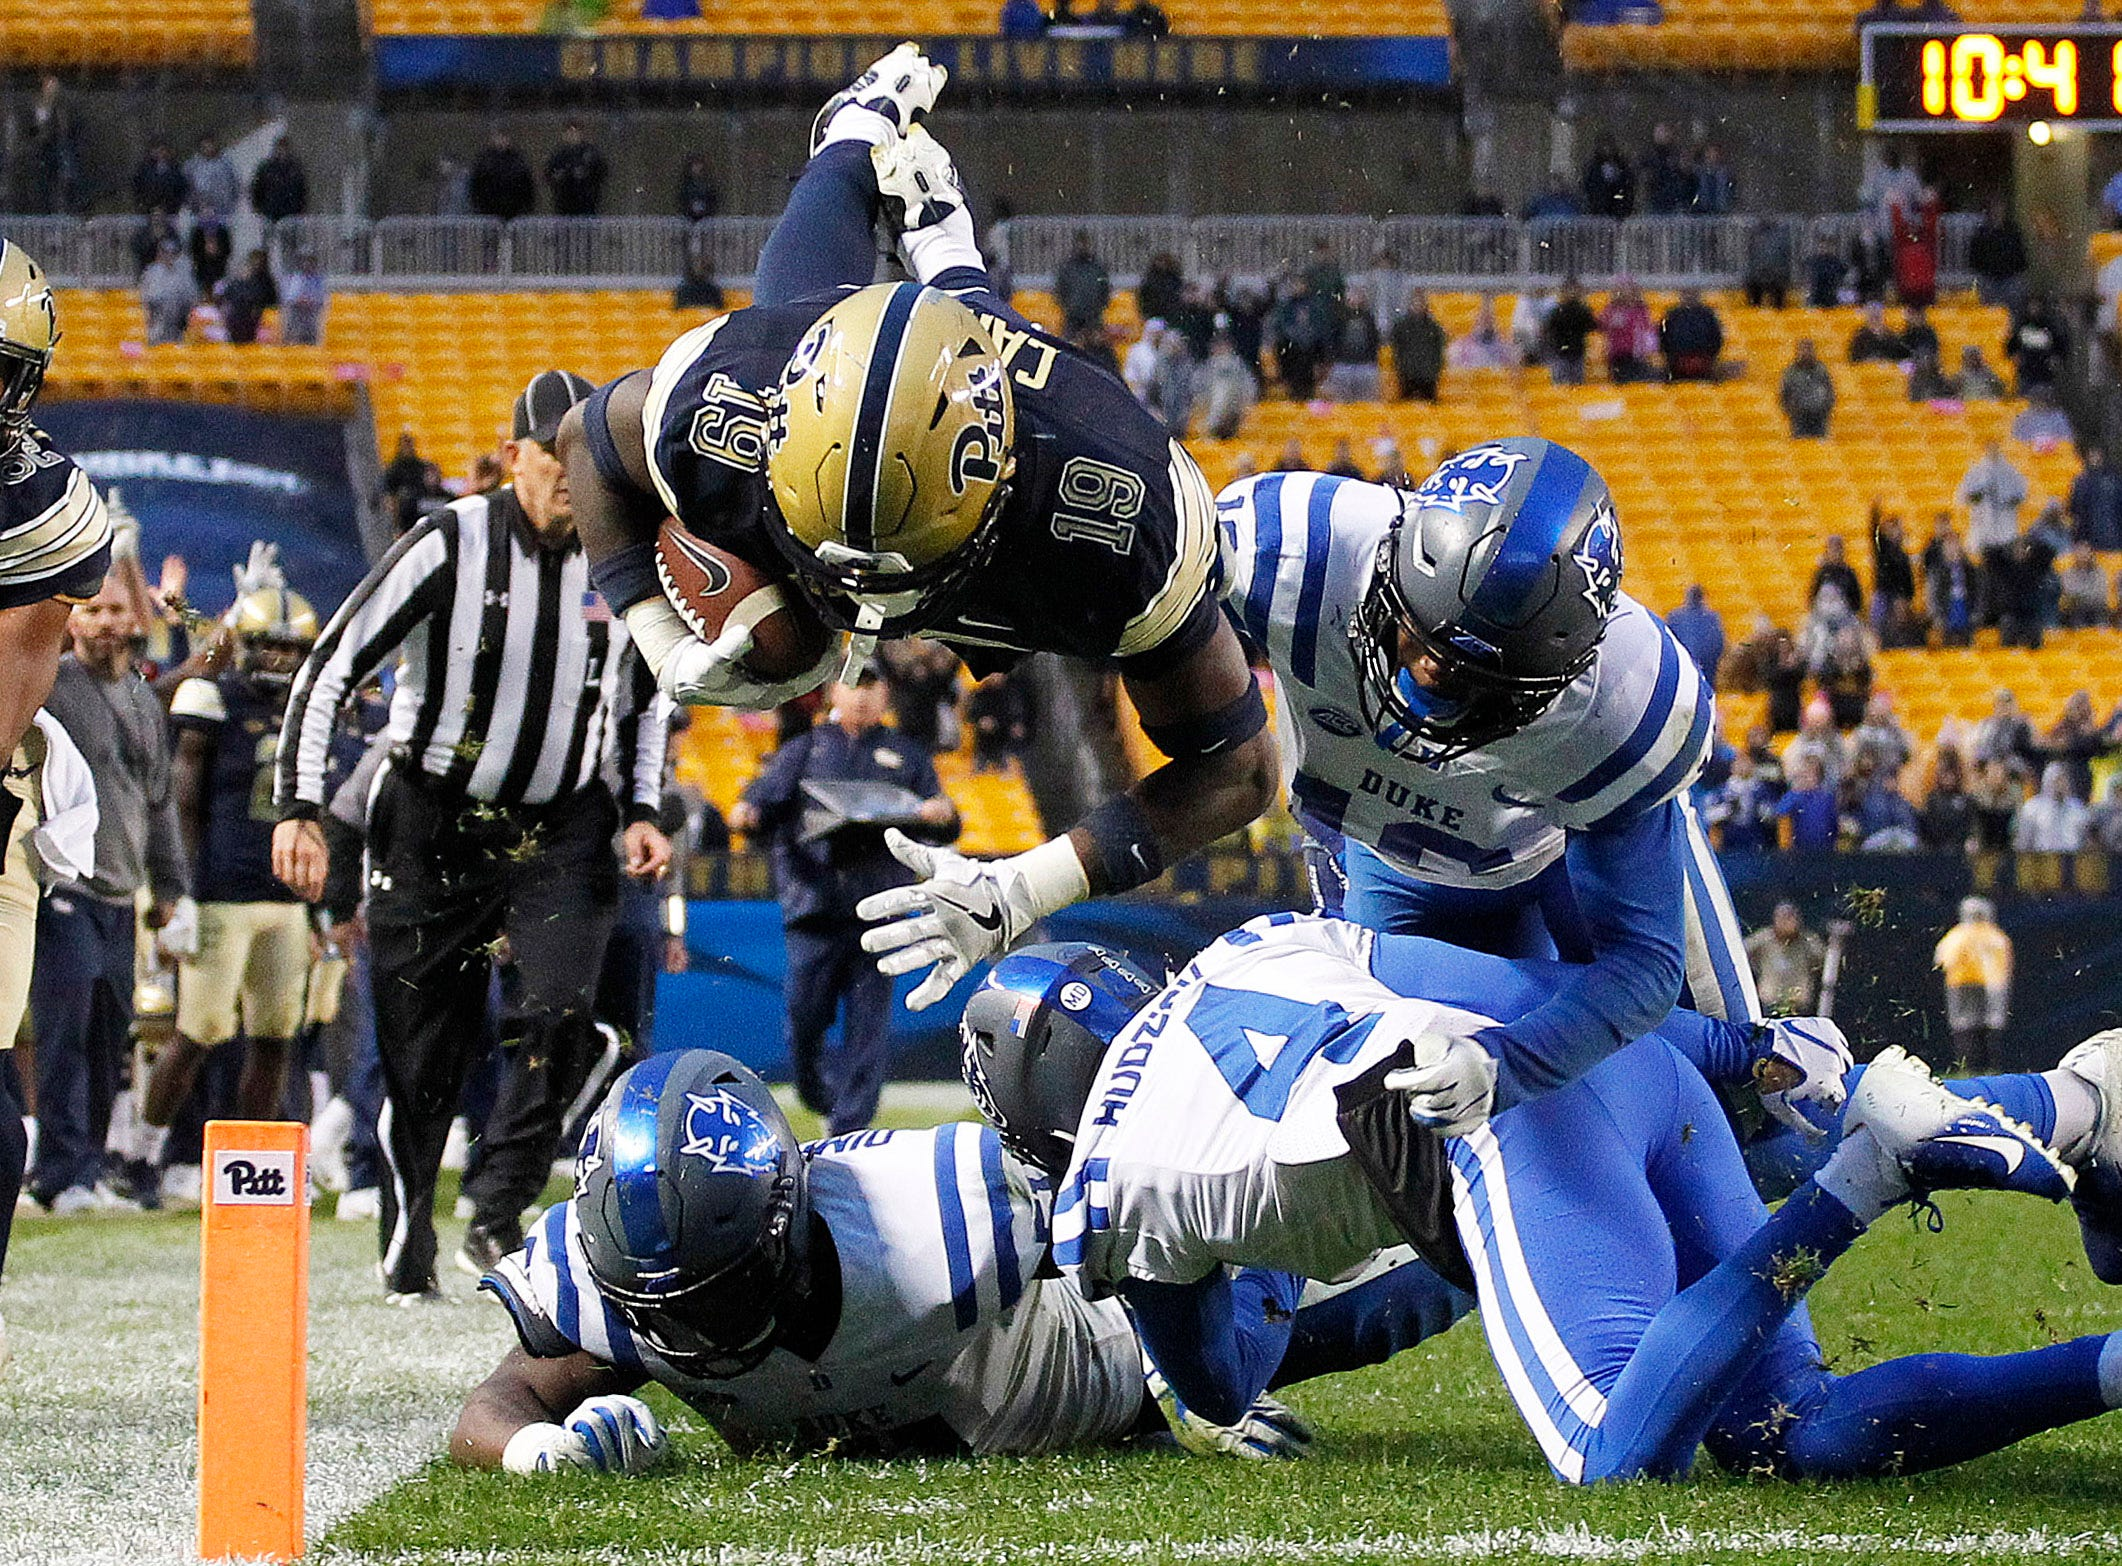 Pittsburgh Panthers wide receiver V'Lique Carter (19) dives into the end zone to score a touchdown against the Duke Blue Devils during the fourth quarter at Heinz Field.